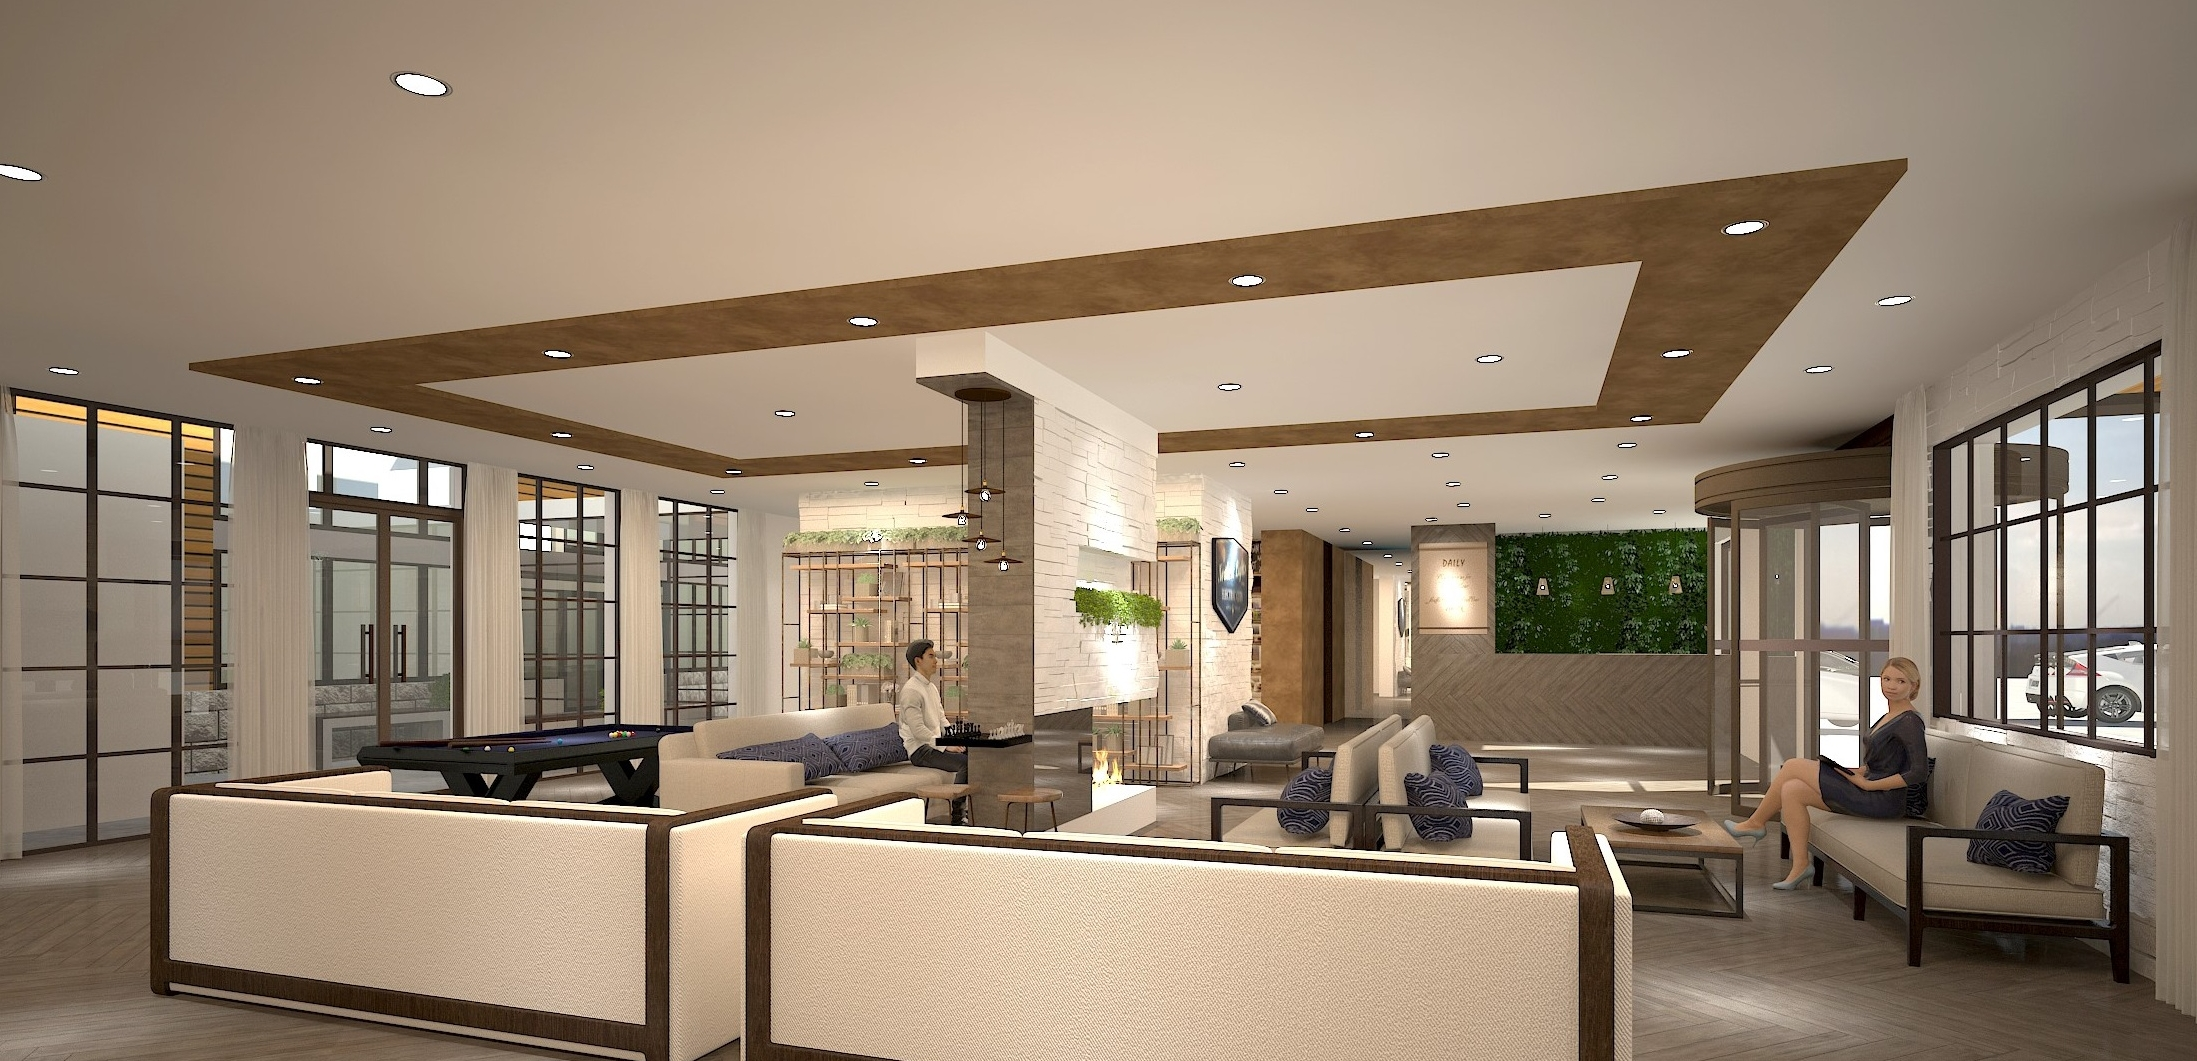 HOTEL RENOVATION \ PENNSYLVANIA